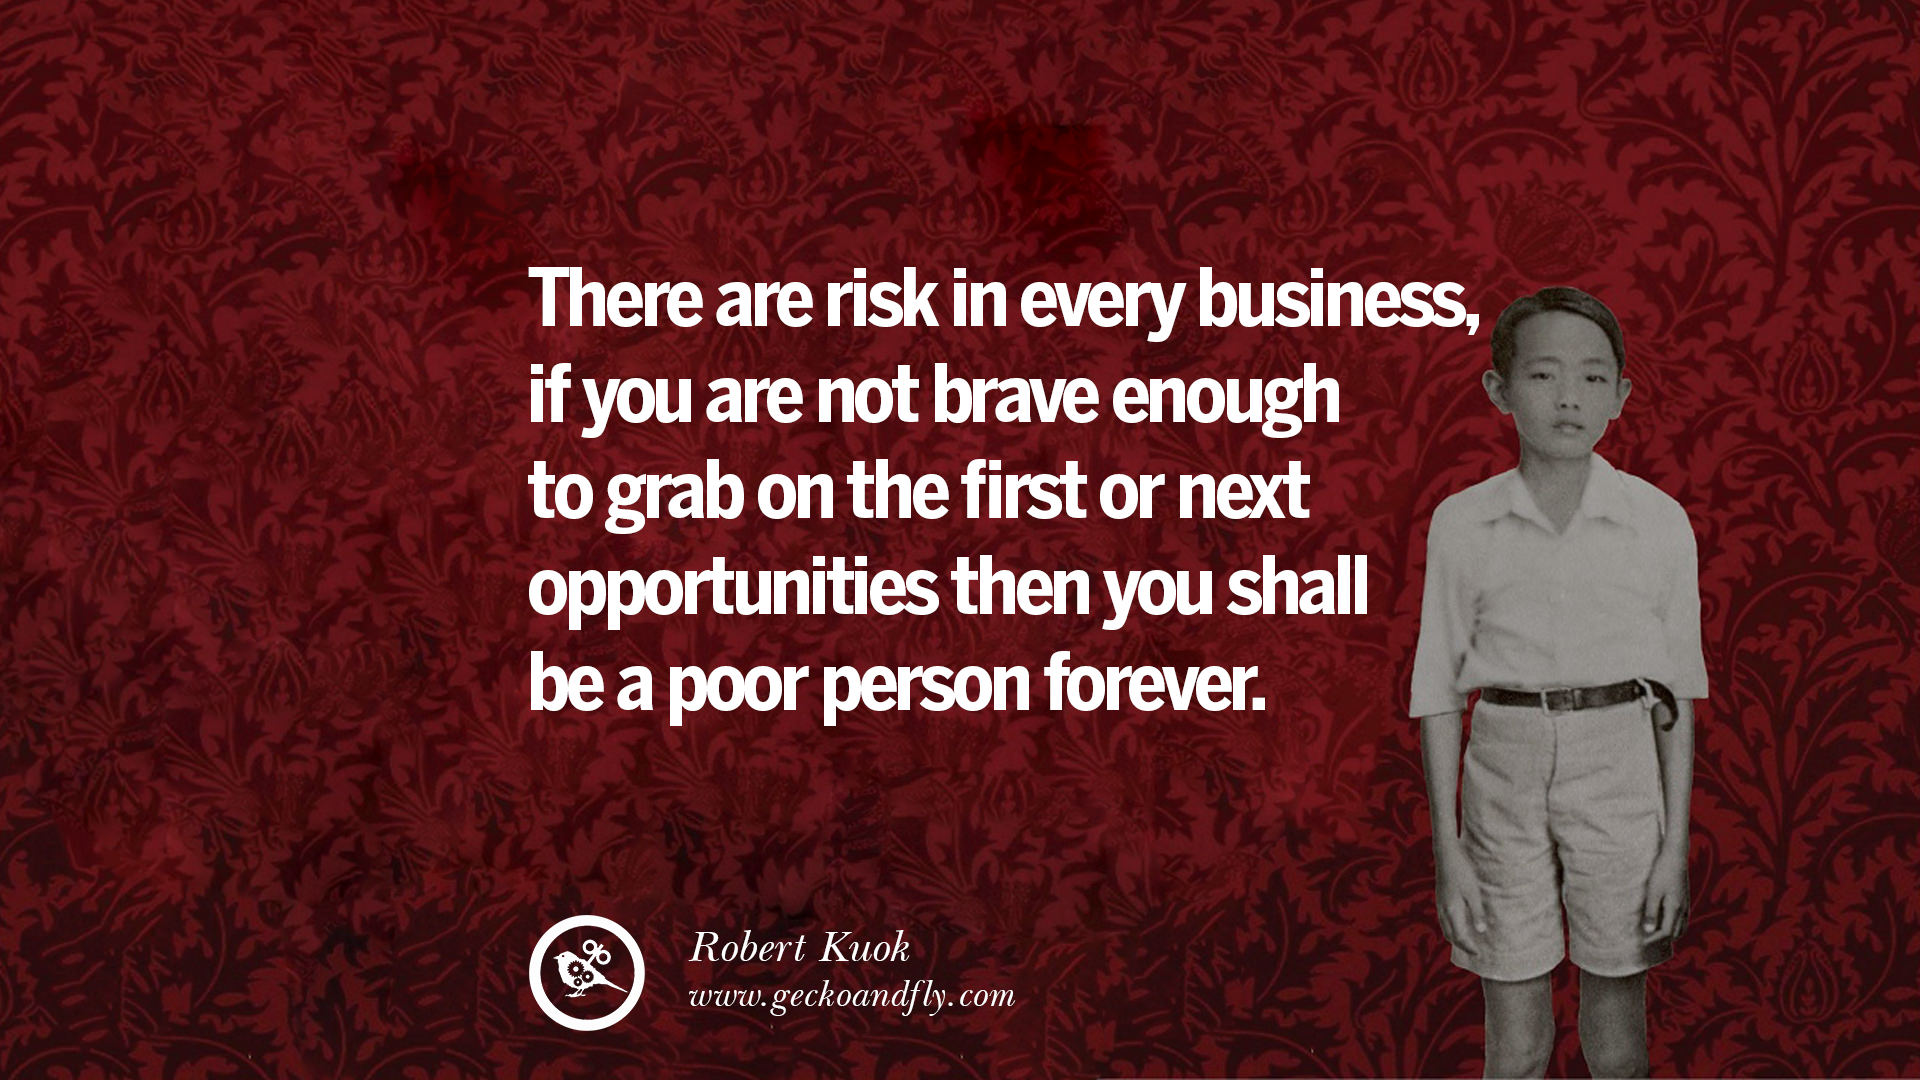 Business Quotes: 15 Inspiring Robert Kuok Quotes On Business, Opportunities